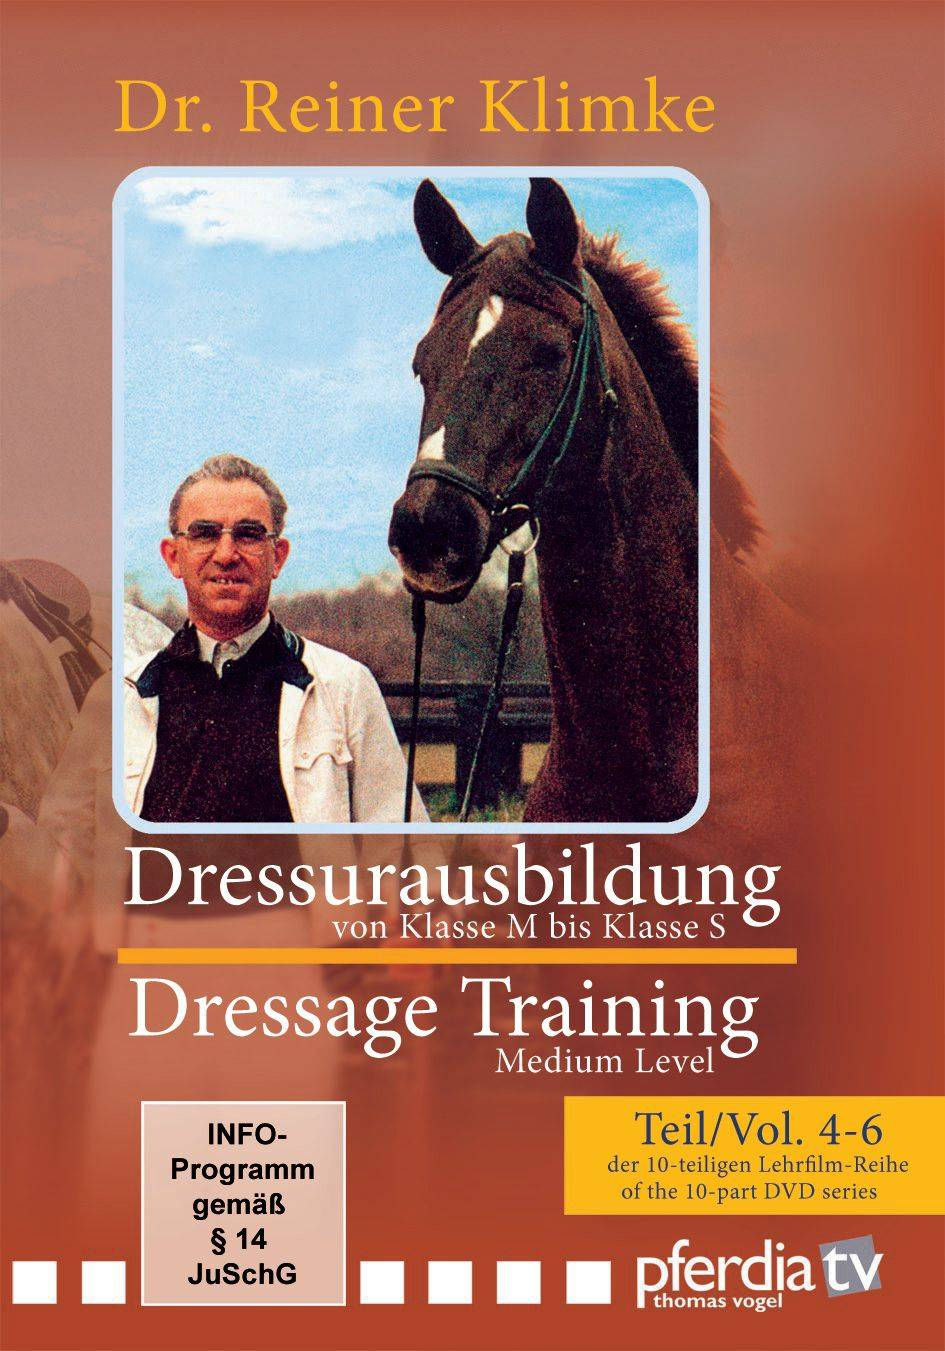 Dressage Training, From Medium to Advanced Levels DVD Voumes 4-6 with Dr Reiner Klimke